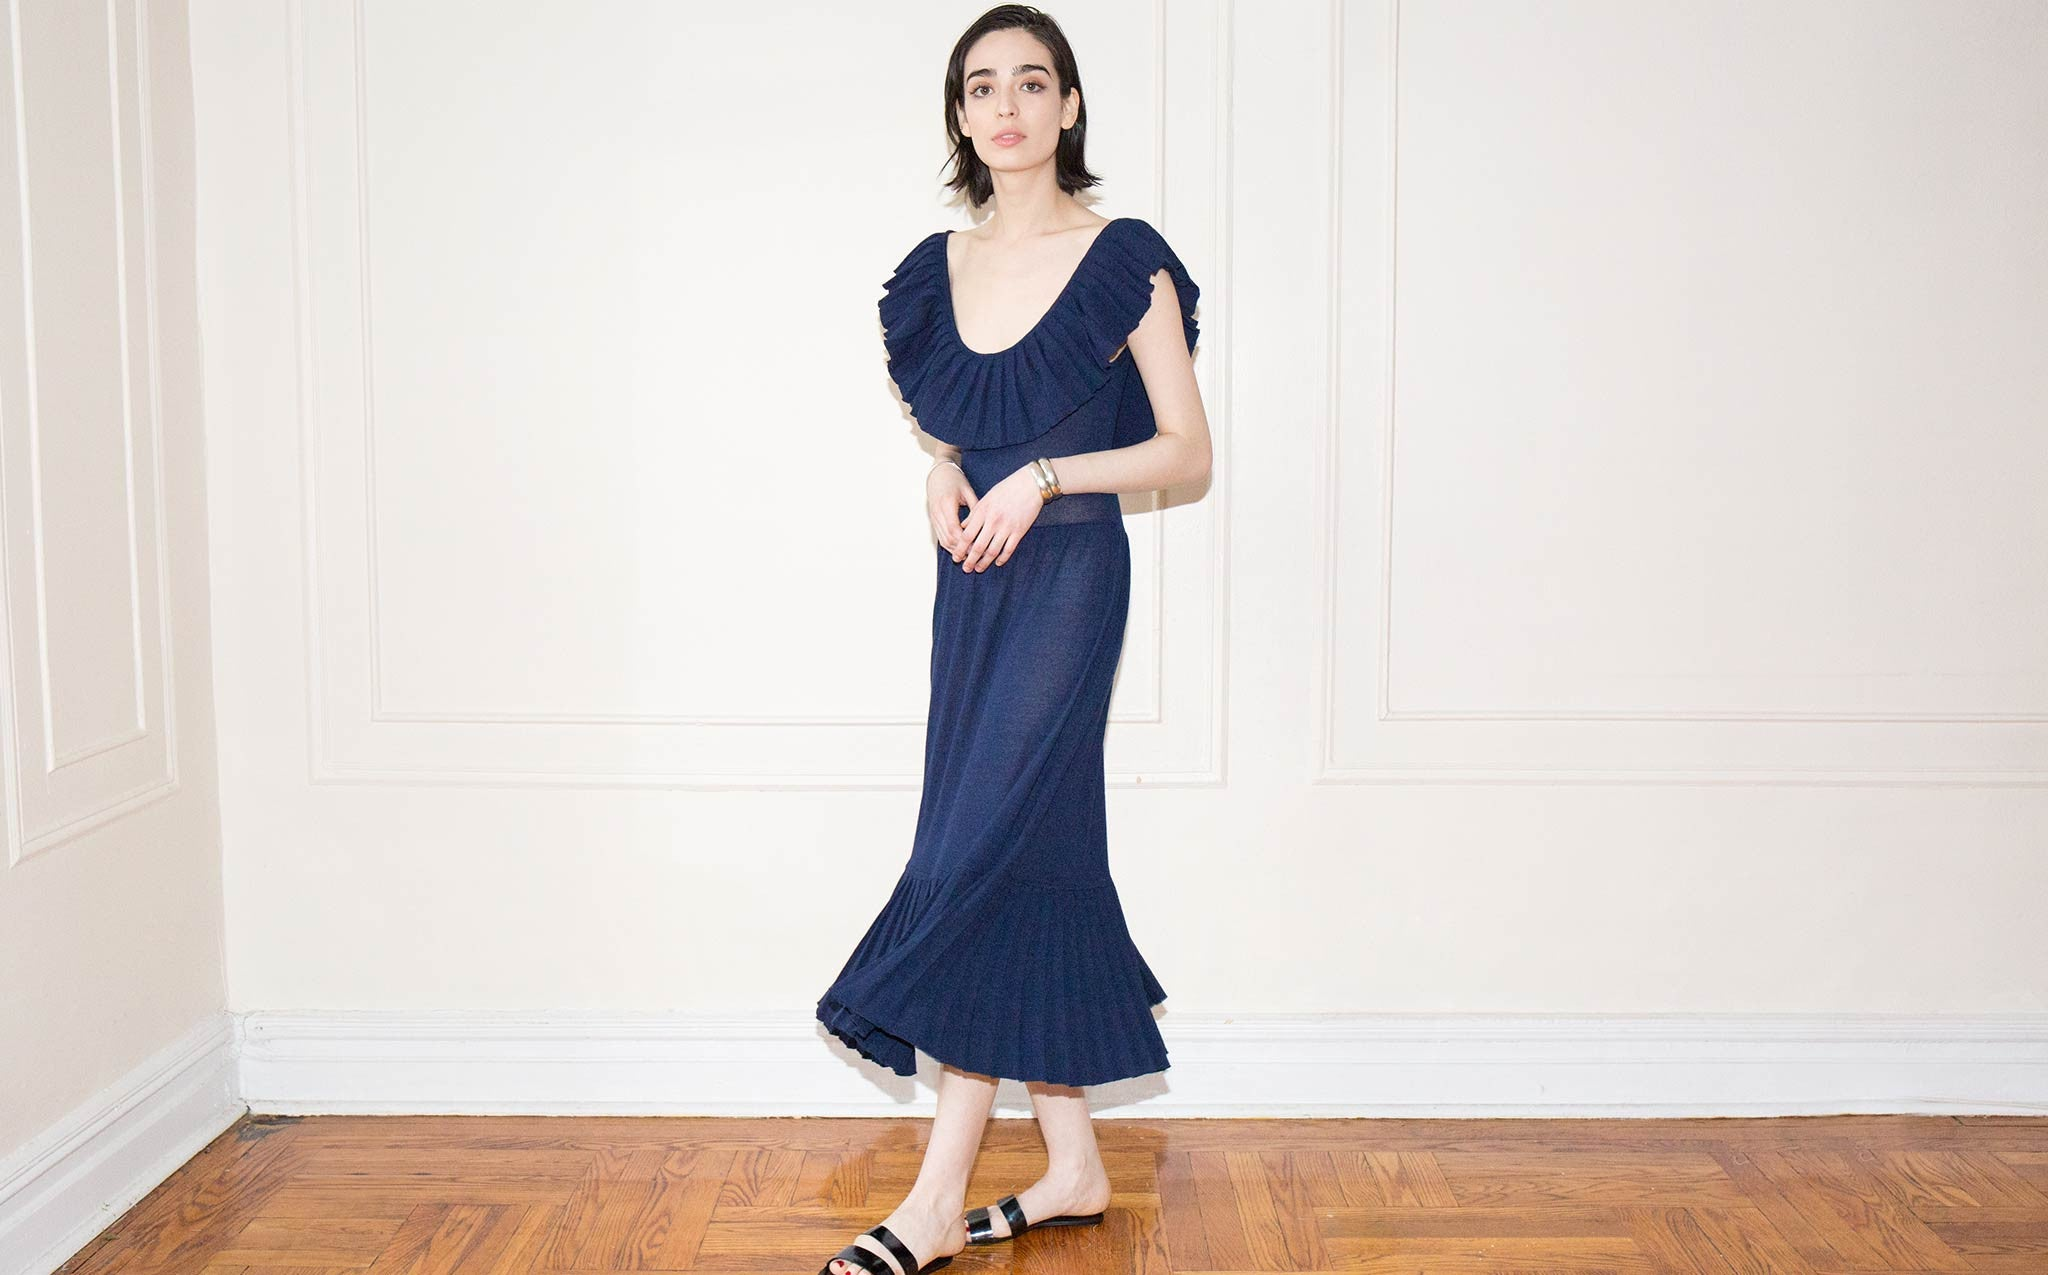 Hesperios Florence Eclipse Blue Neck Frill Dress